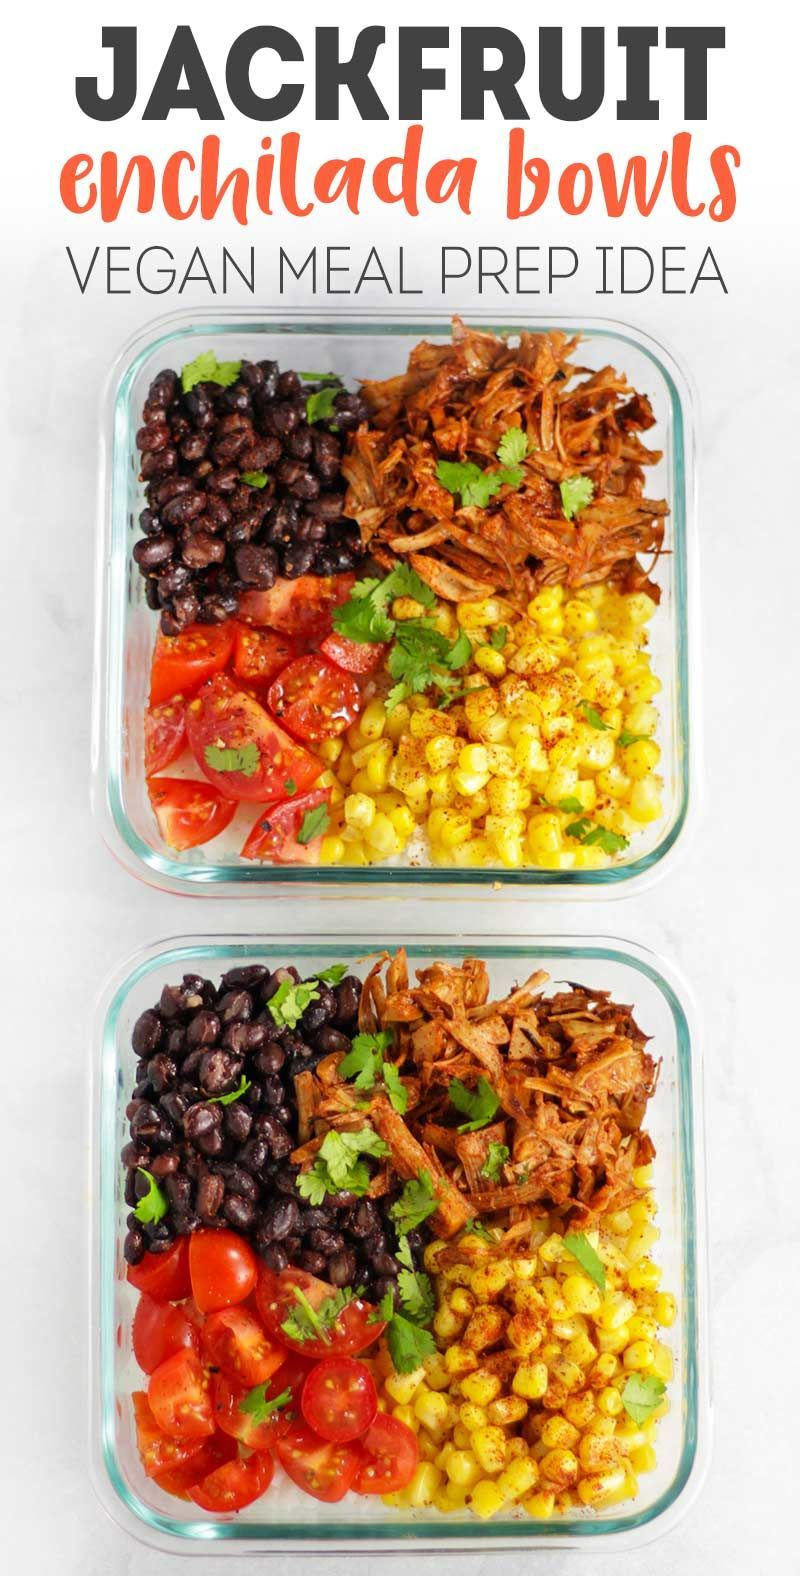 Jackfruit Enchilada Bowls Recipe Vegetarian meal prep